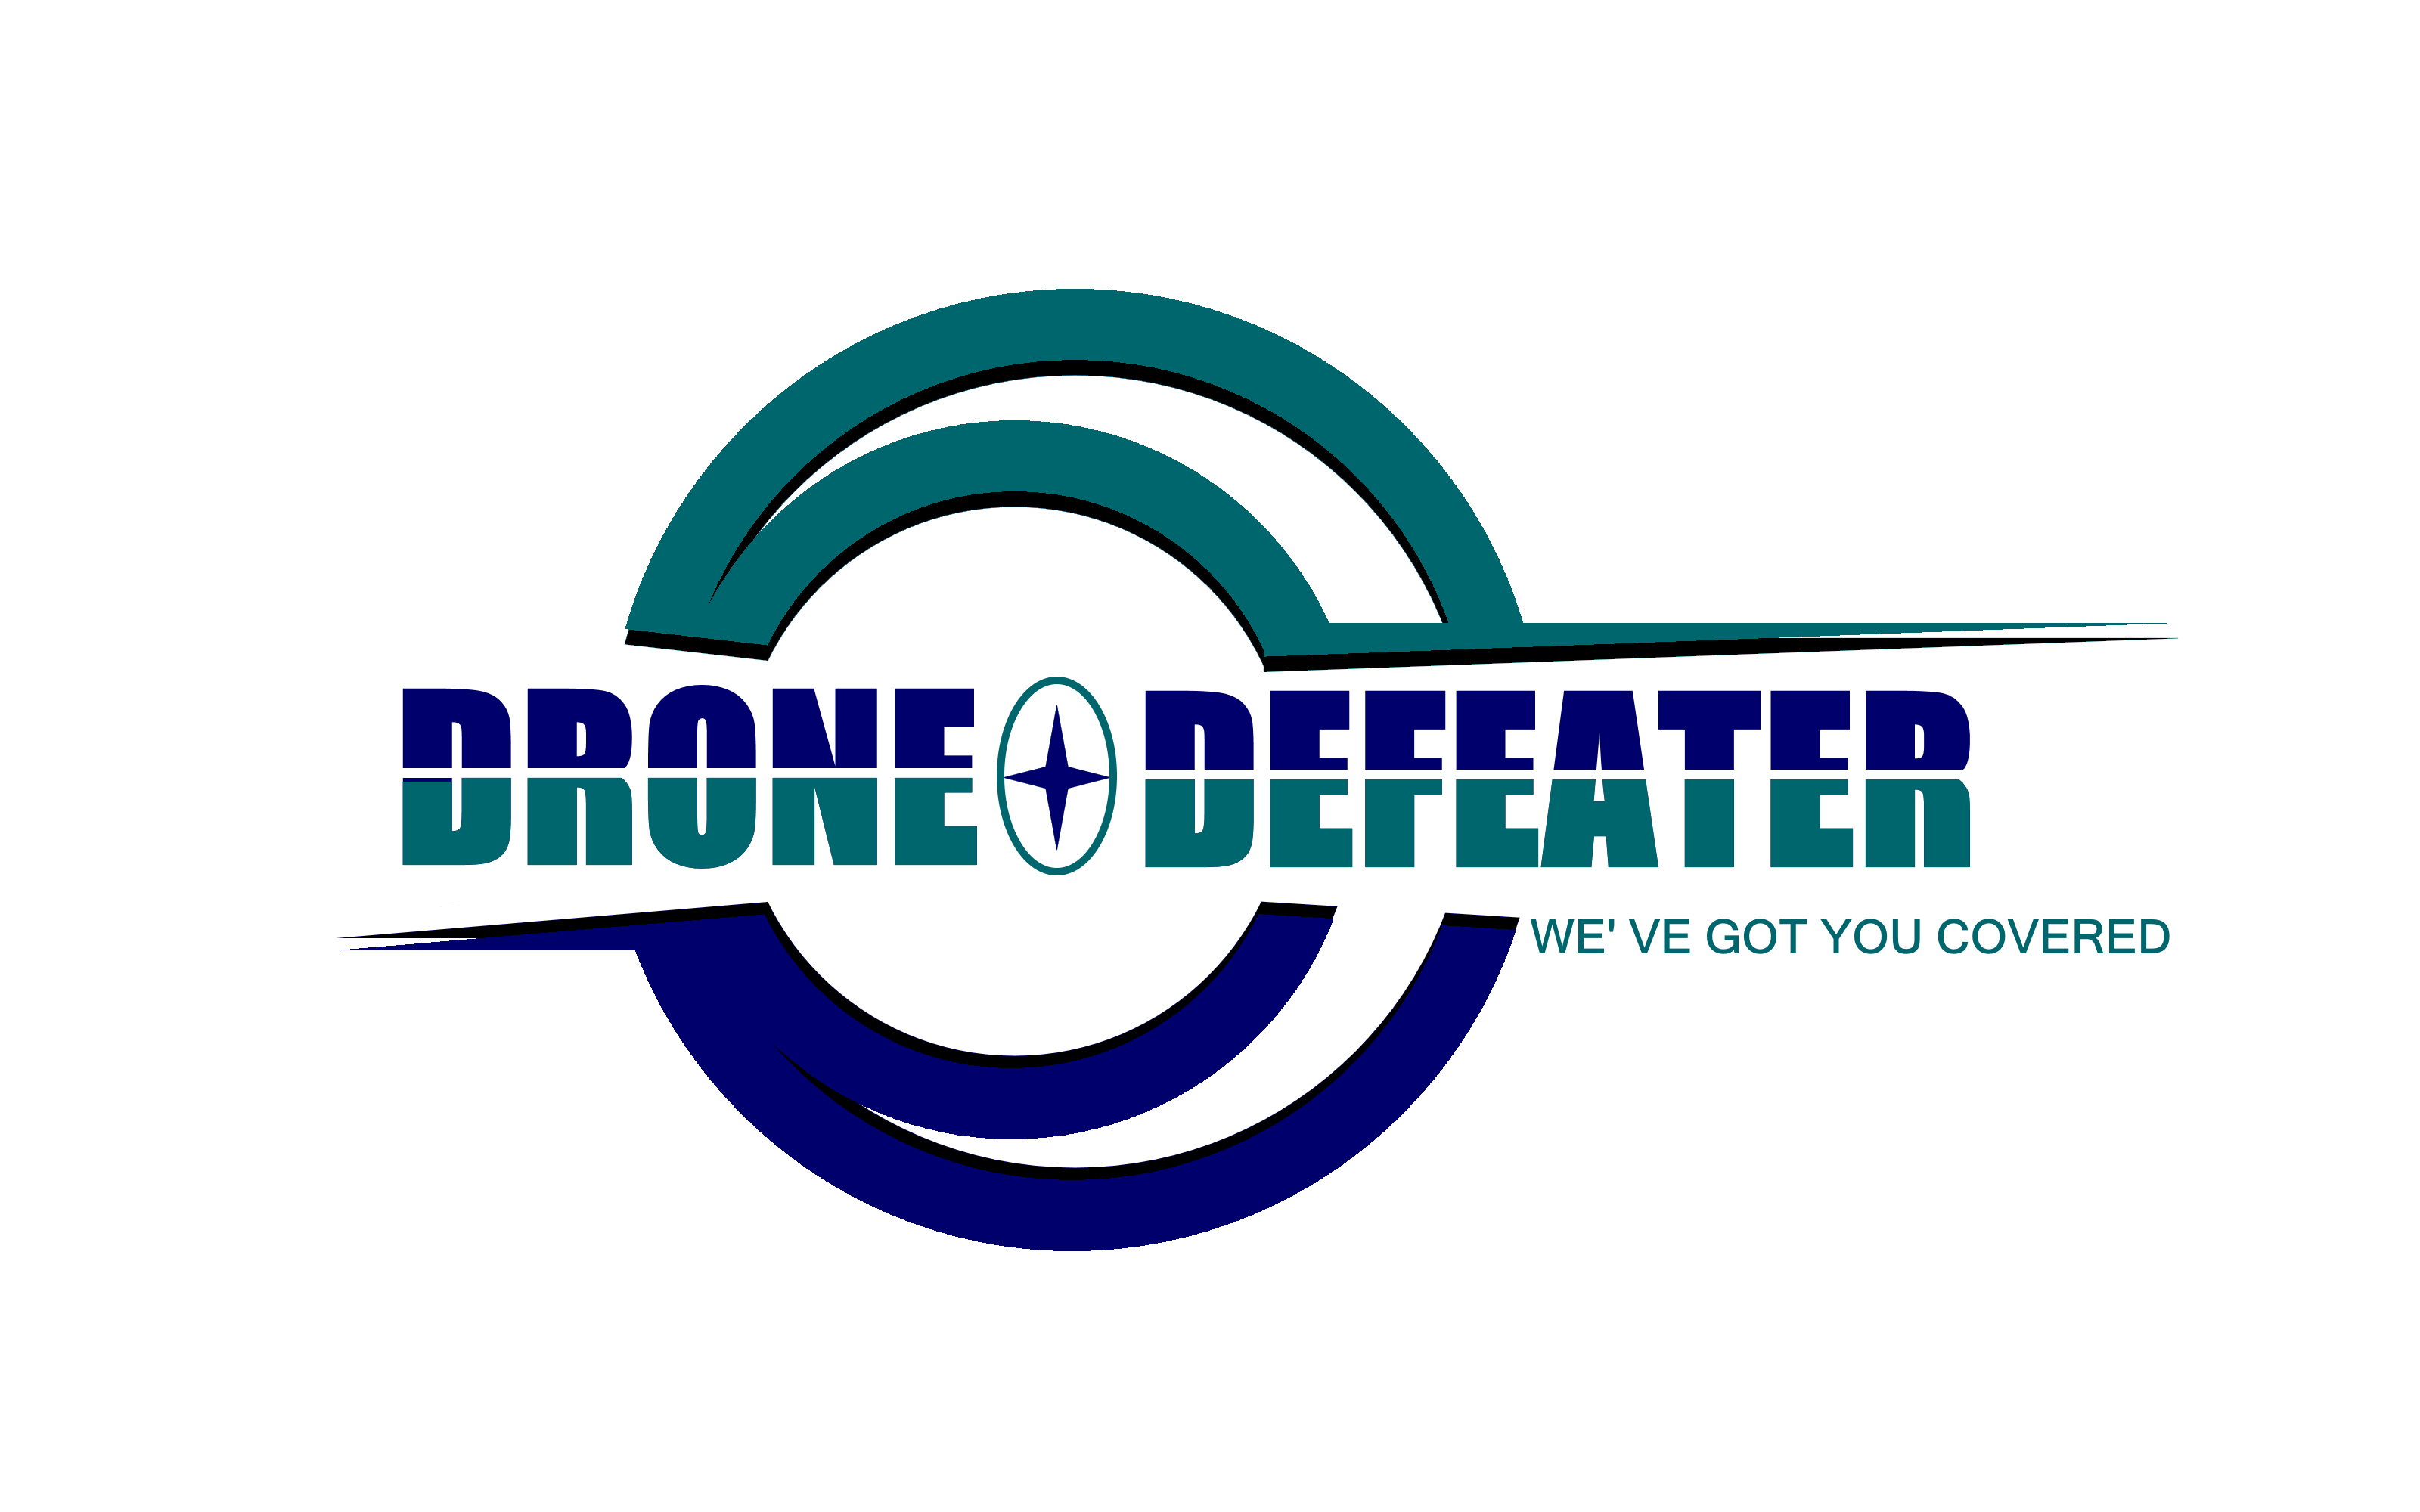 Logo Design by Roberto Bassi - Entry No. 41 in the Logo Design Contest Artistic Logo Design for Drone Defeater.